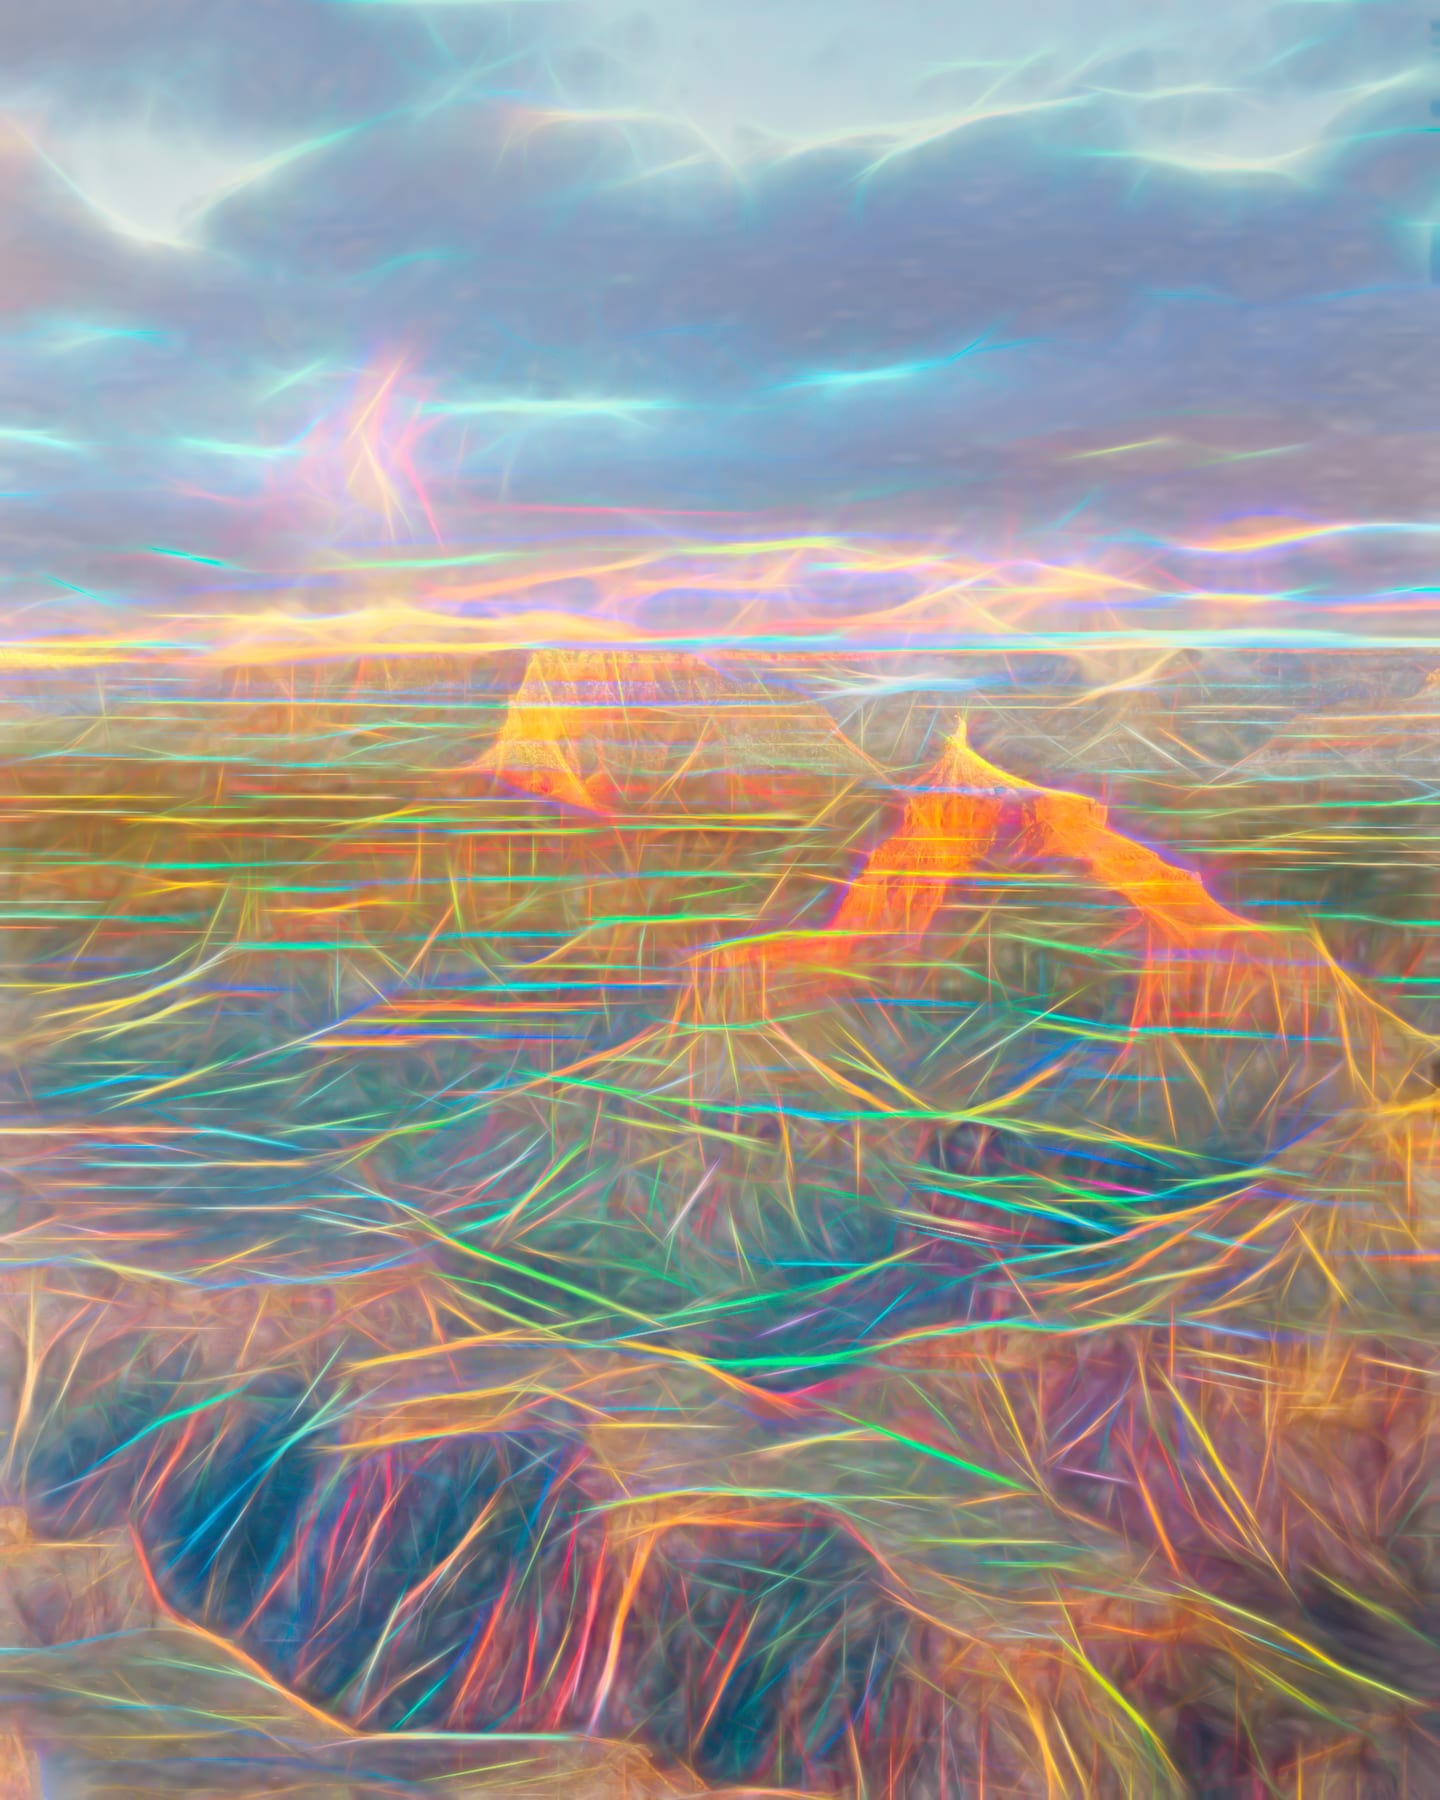 Digital art photo of Isis Temple in Grand Canyon with fantasy neon lines on landscape and clouds.